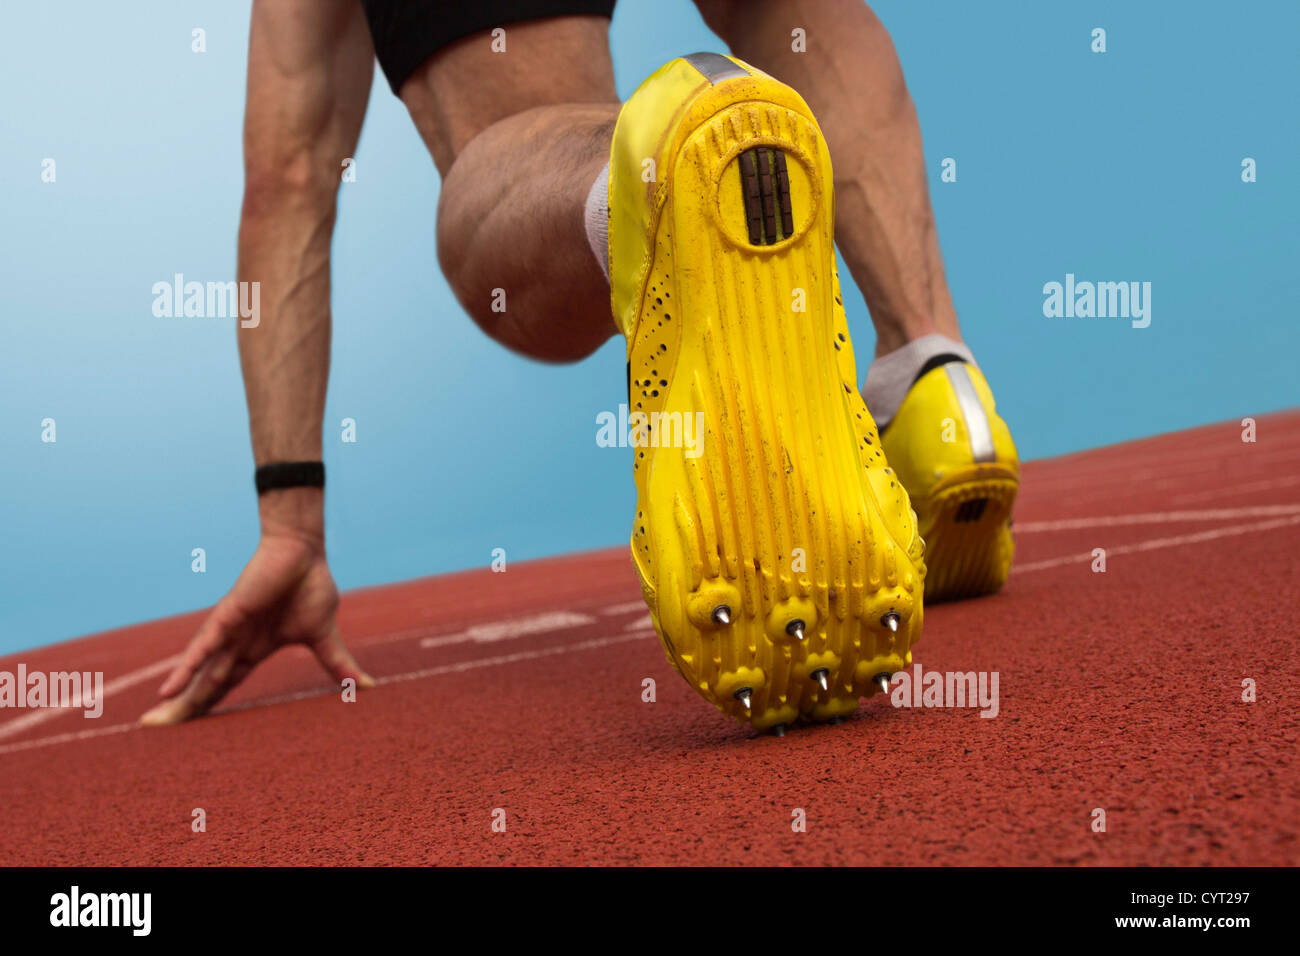 Sprinter with spikes is in start position - Stock Image